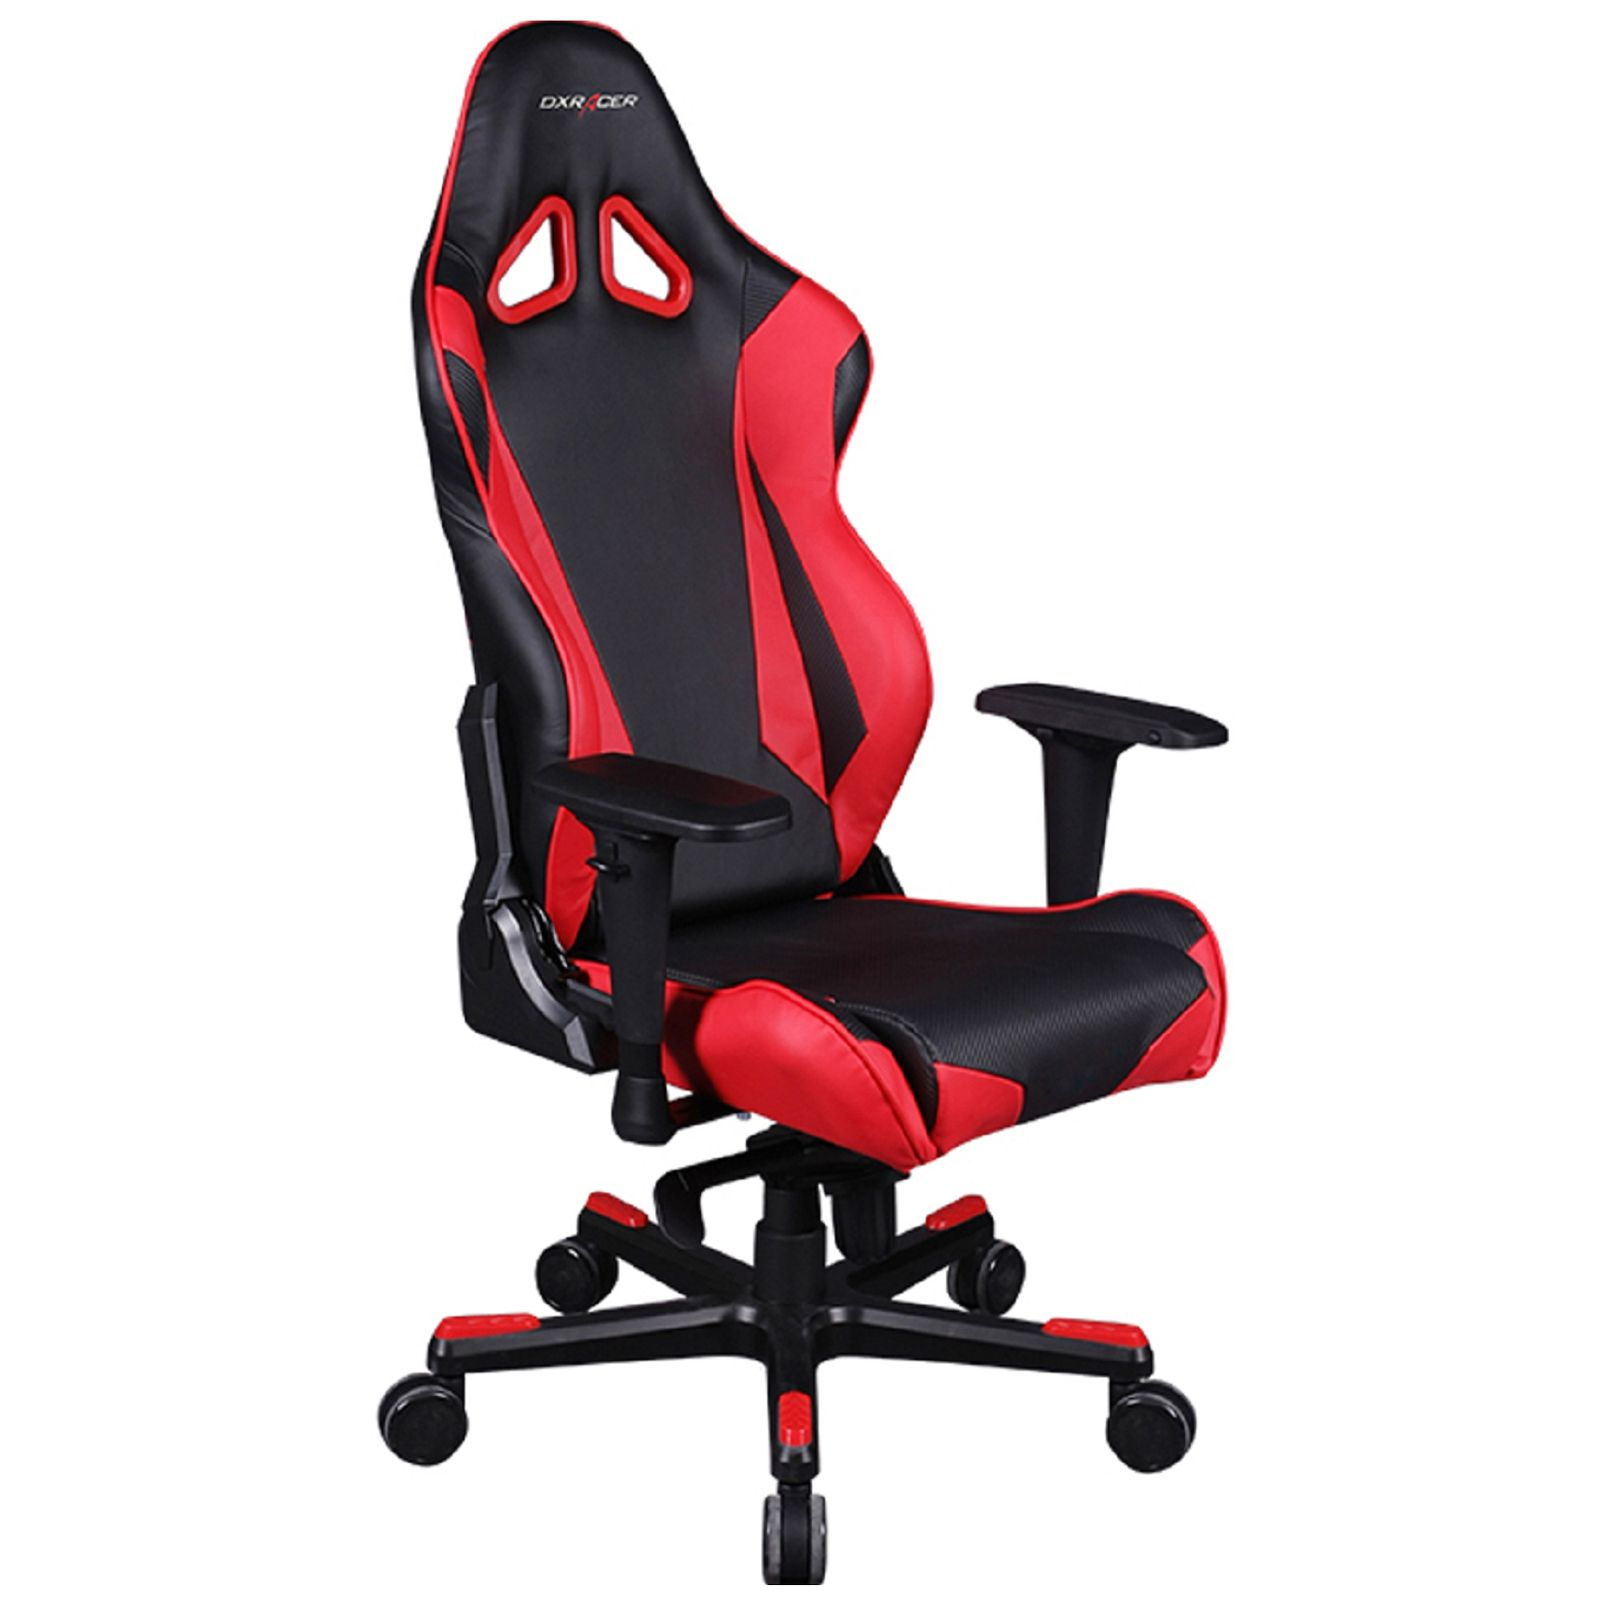 DXRACER RJ0IINR puter chair office chair sports chair gaming